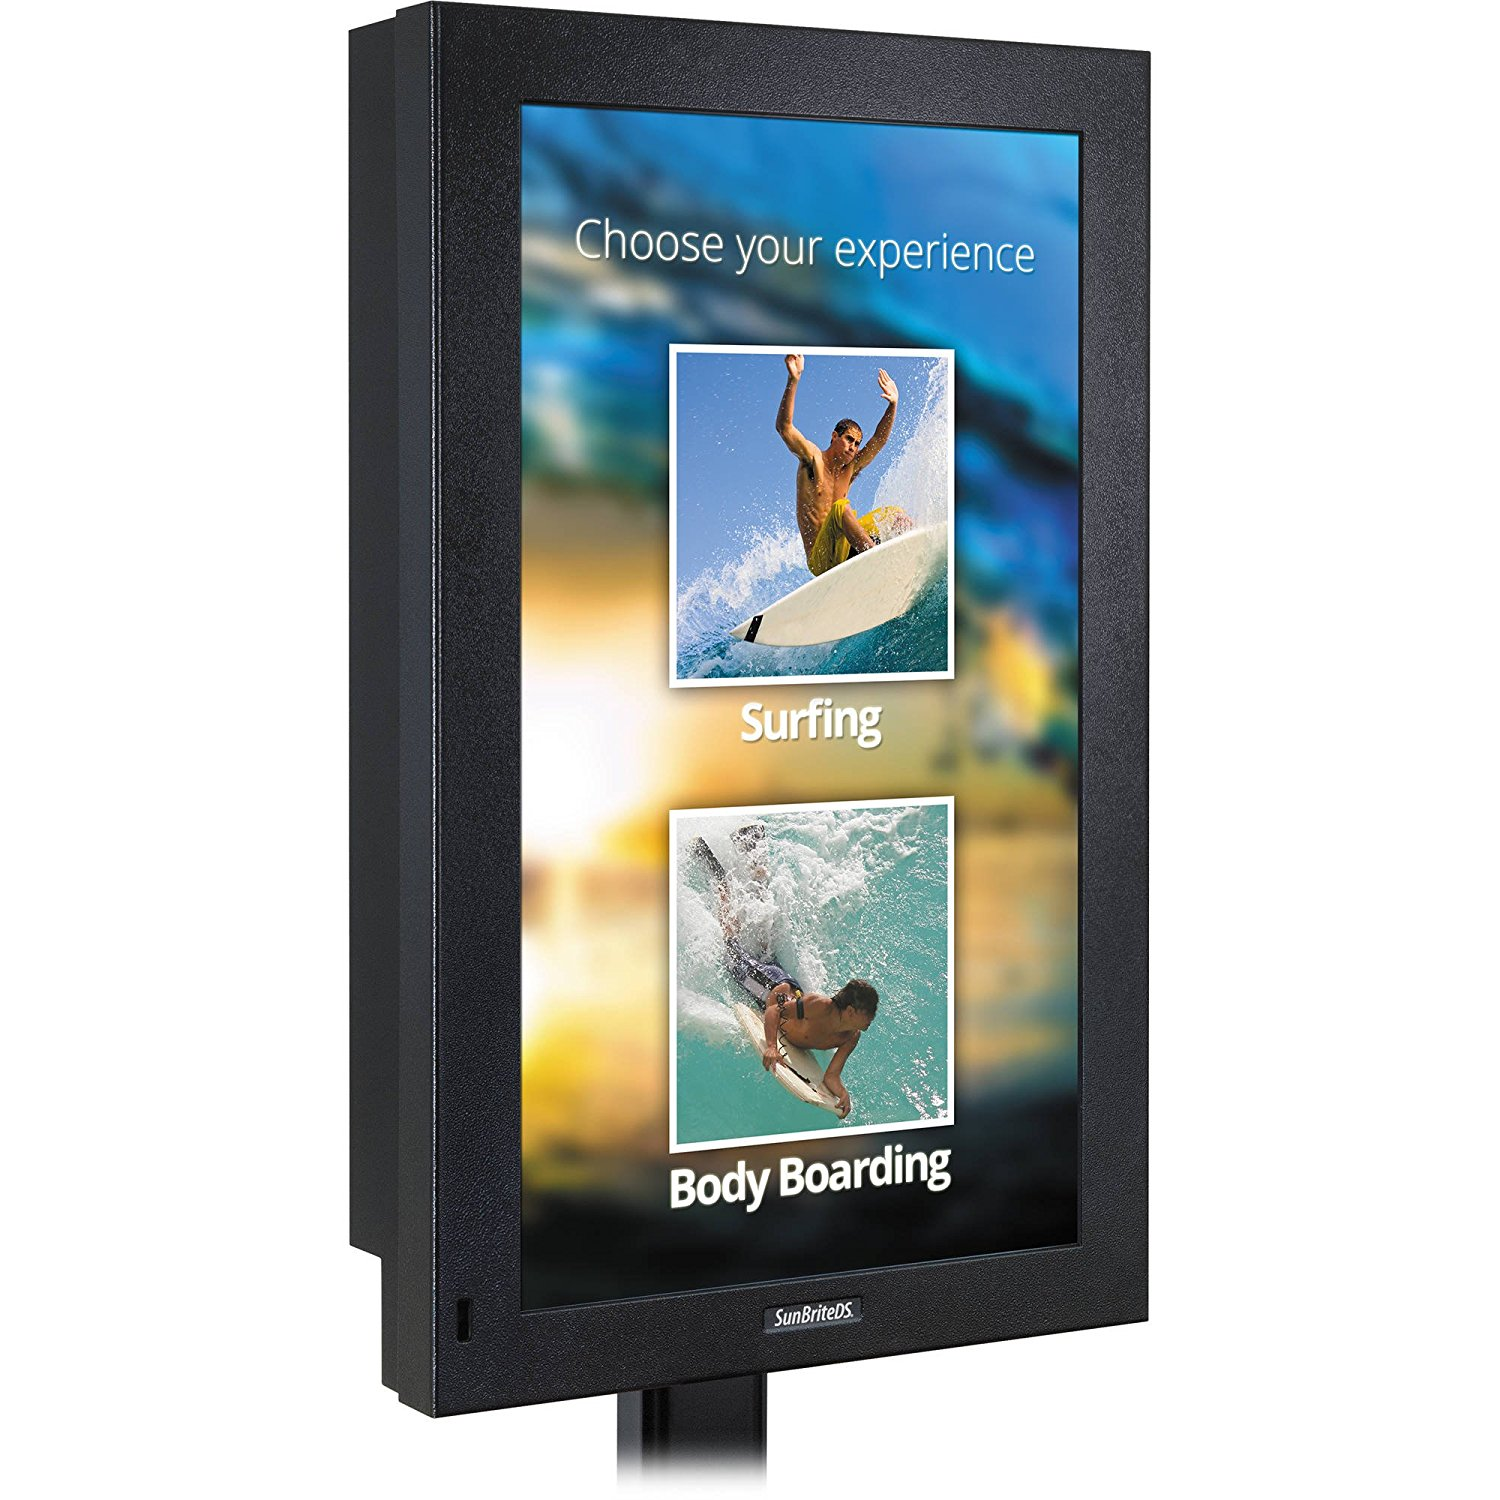 FITS TV with Wall Mount 76.7W x 5.4D x 47.9H Sunbrite SB-8418UHD-BL 84 TV Outdoor Waterproof Black Cover Maximize TV Life by Comp Bind Technology Heavy Duty Material